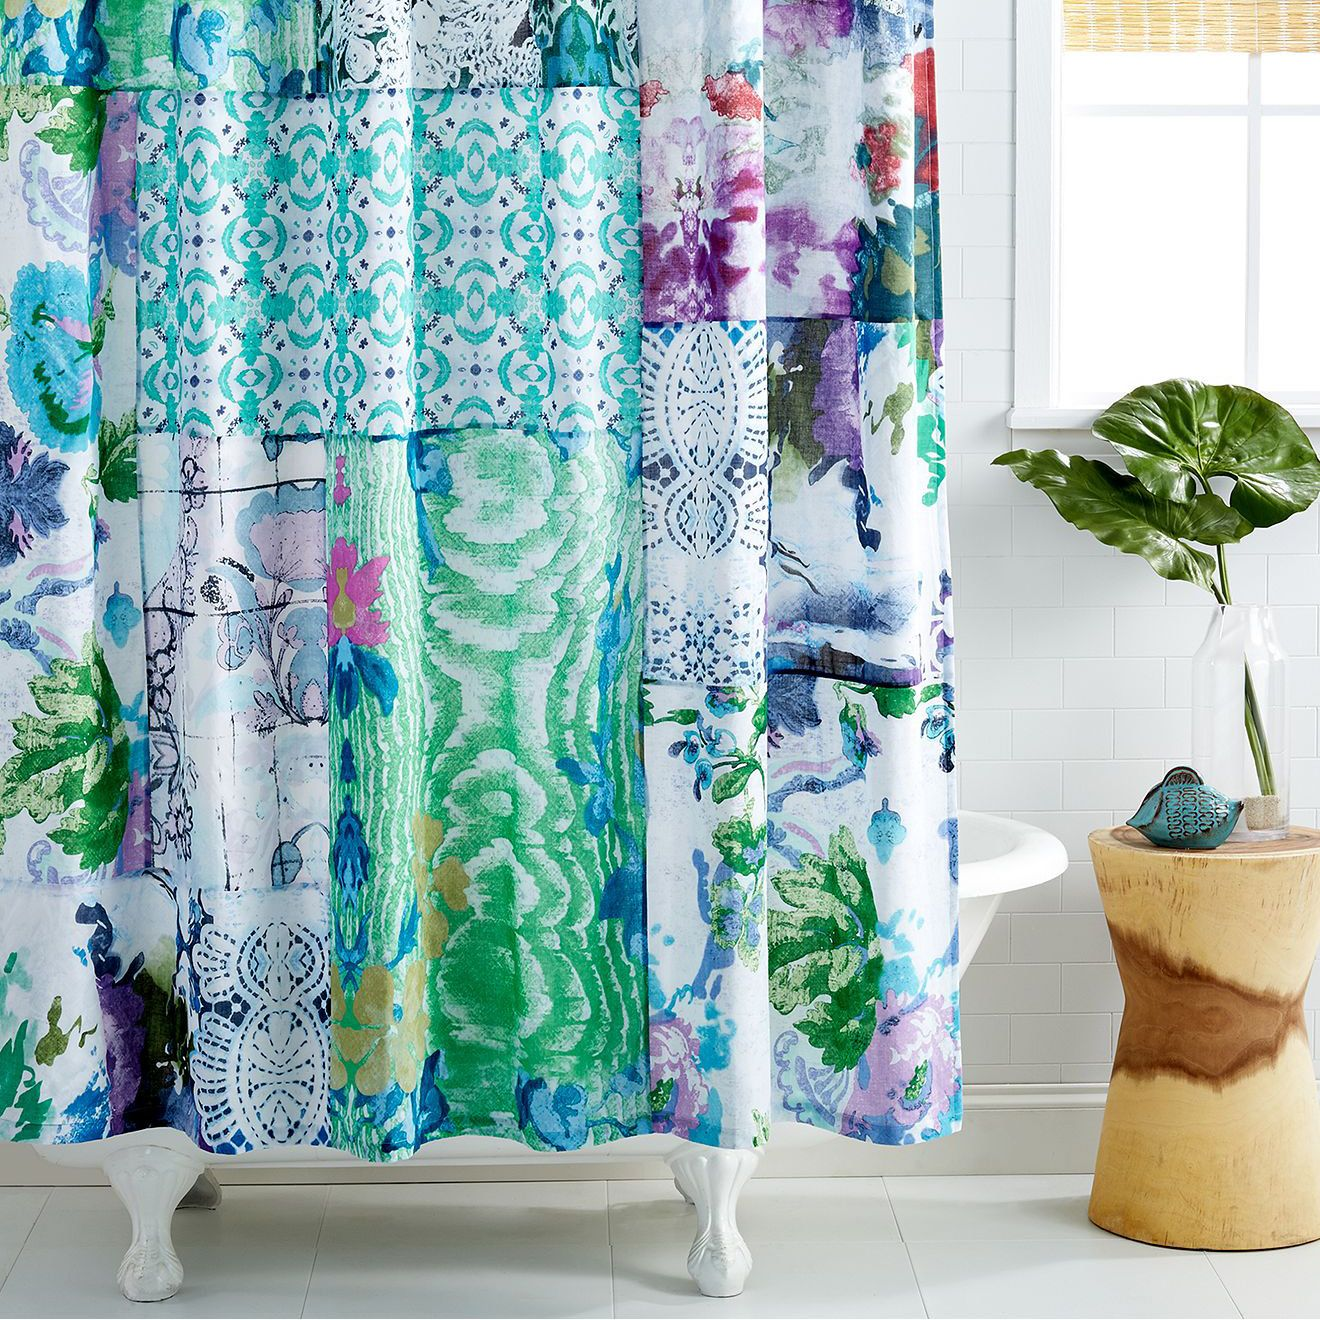 Funky Shower Curtains To Spruce Up Your Bathroom | bathroom designs ...